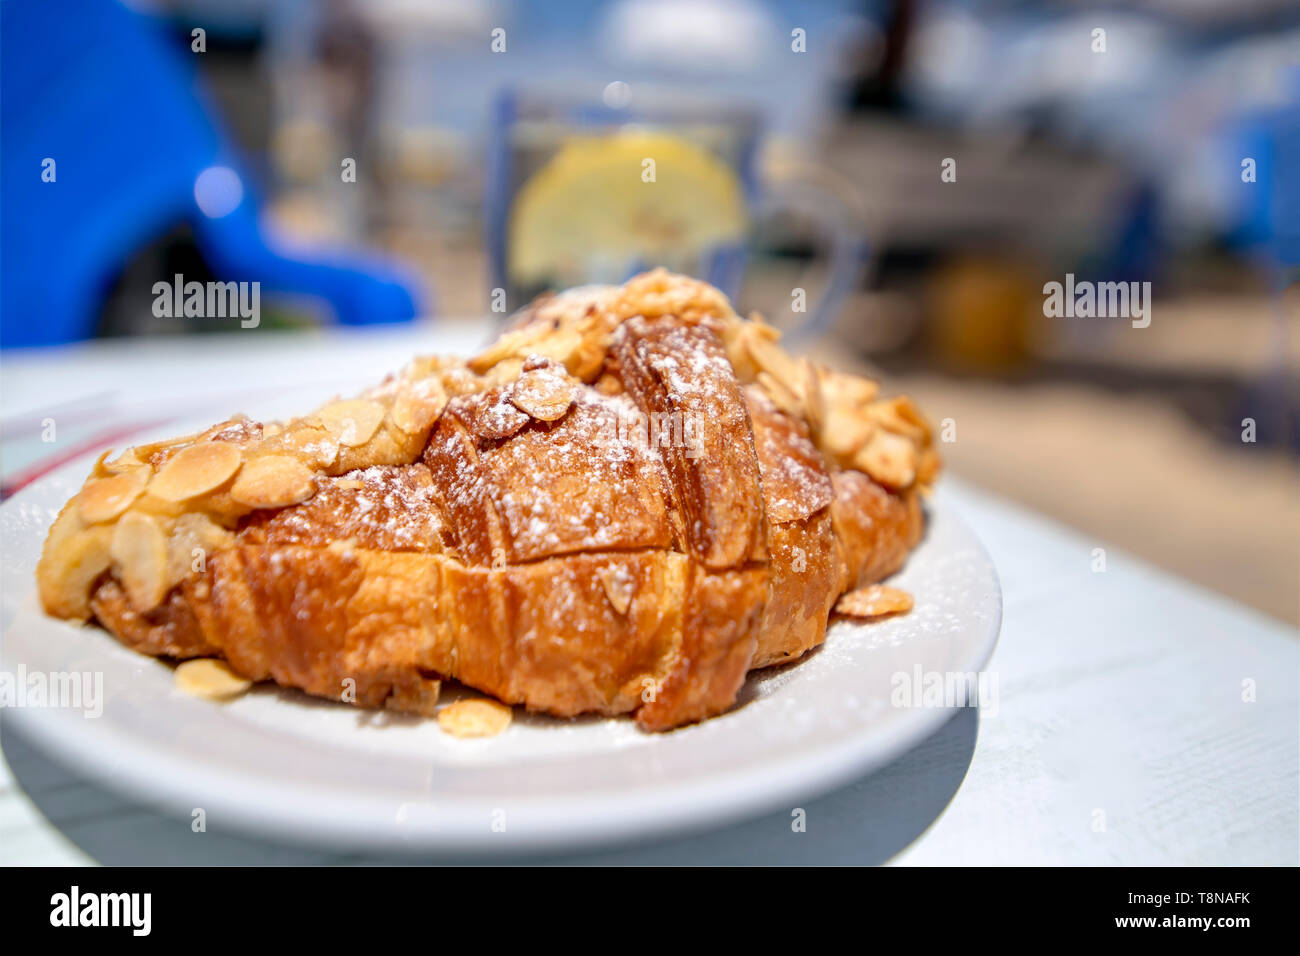 Croisson dusted with almonds and powdered sugar close-up on a blurred background. - Stock Image